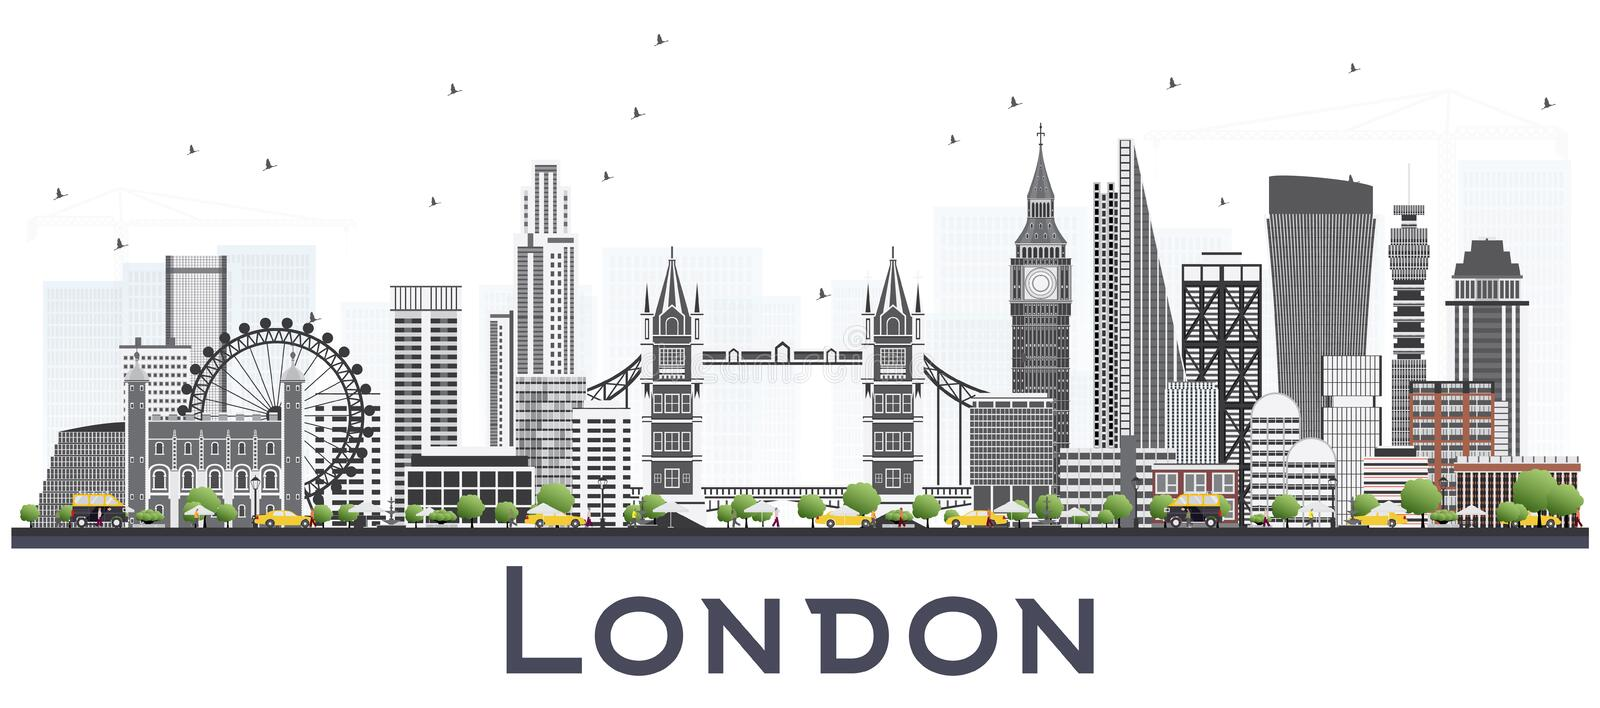 London England Skyline with Gray Buildings Isolated on White Background. Vector Illustration. London Cityscape with Landmarks stock illustration